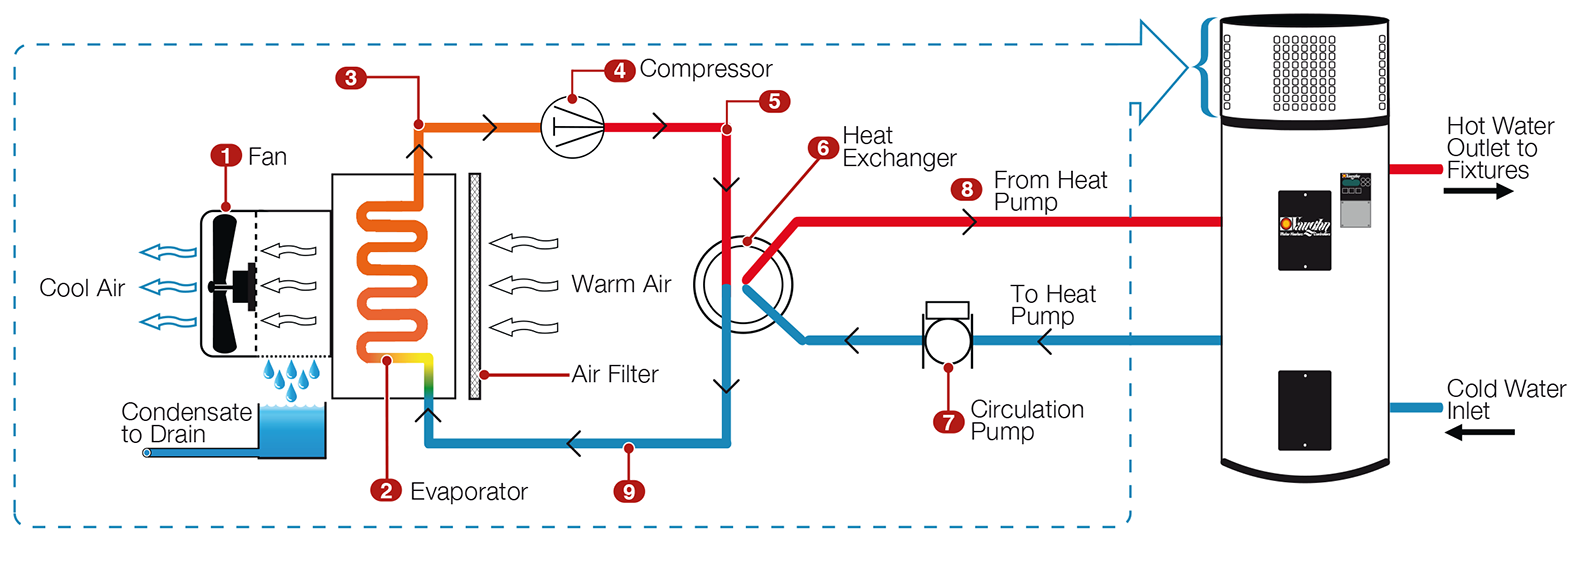 High Efficiency Electric Water Heater Vaughn Heating Fan Wiring Diagram Heat Pump Operational